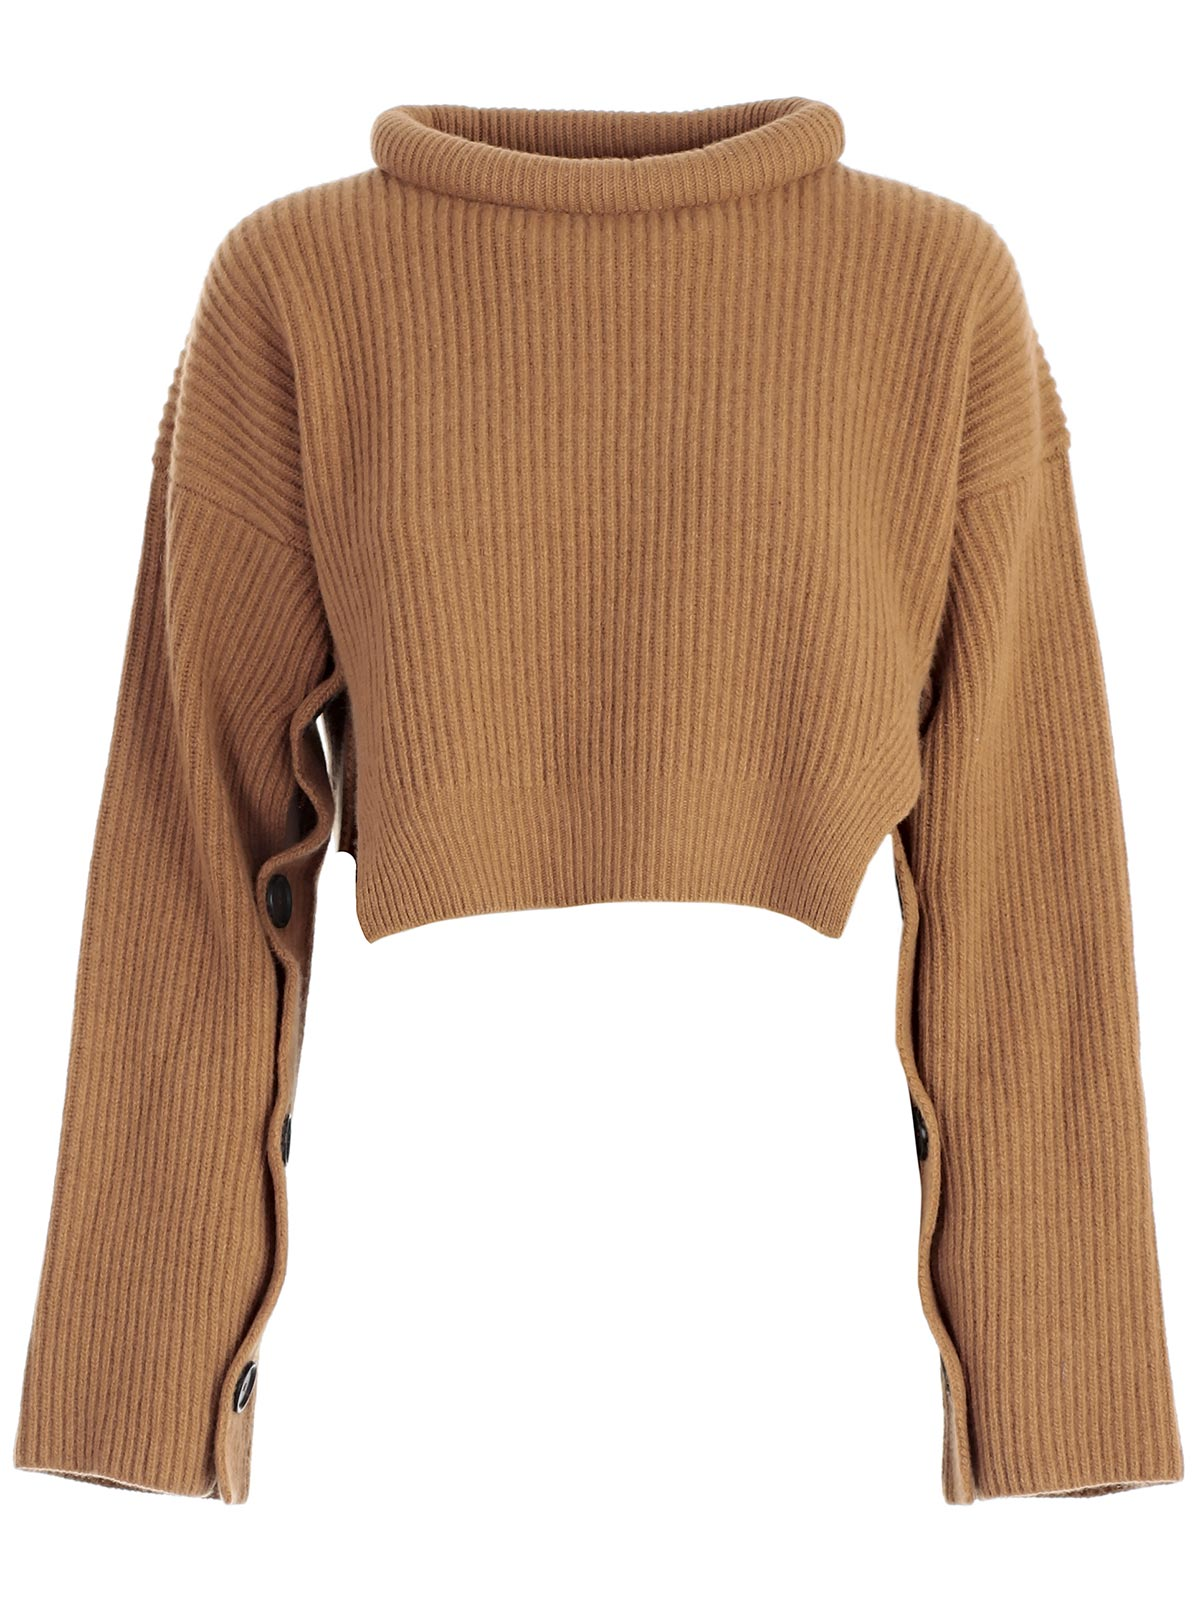 Picture of Erika Cavallini Sweater